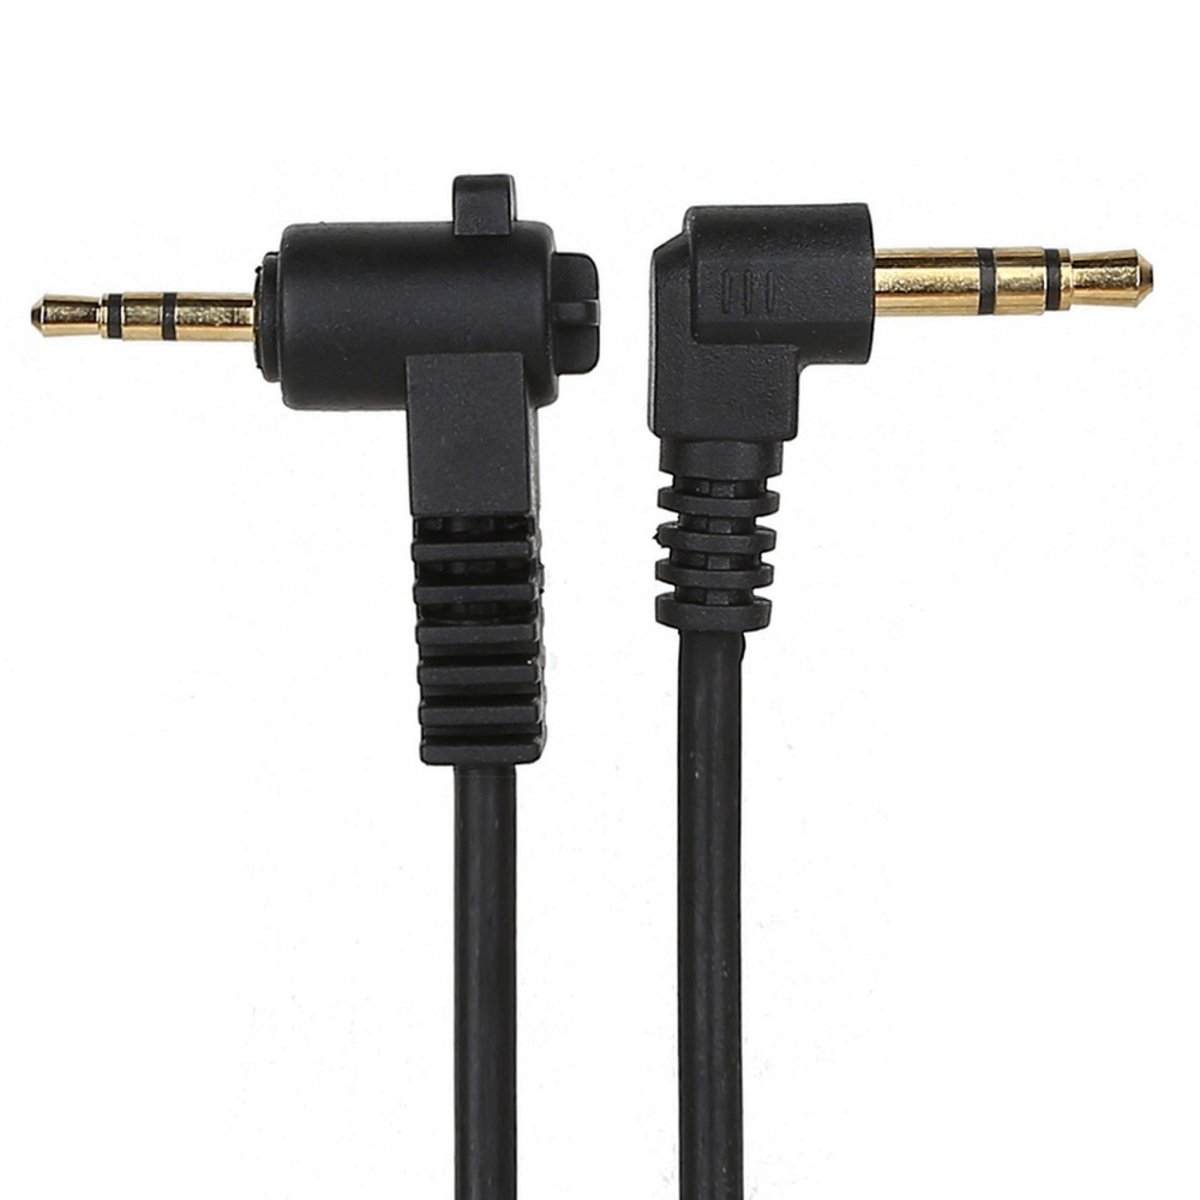 Shutter Cable SC-C1 for Canon 1000D